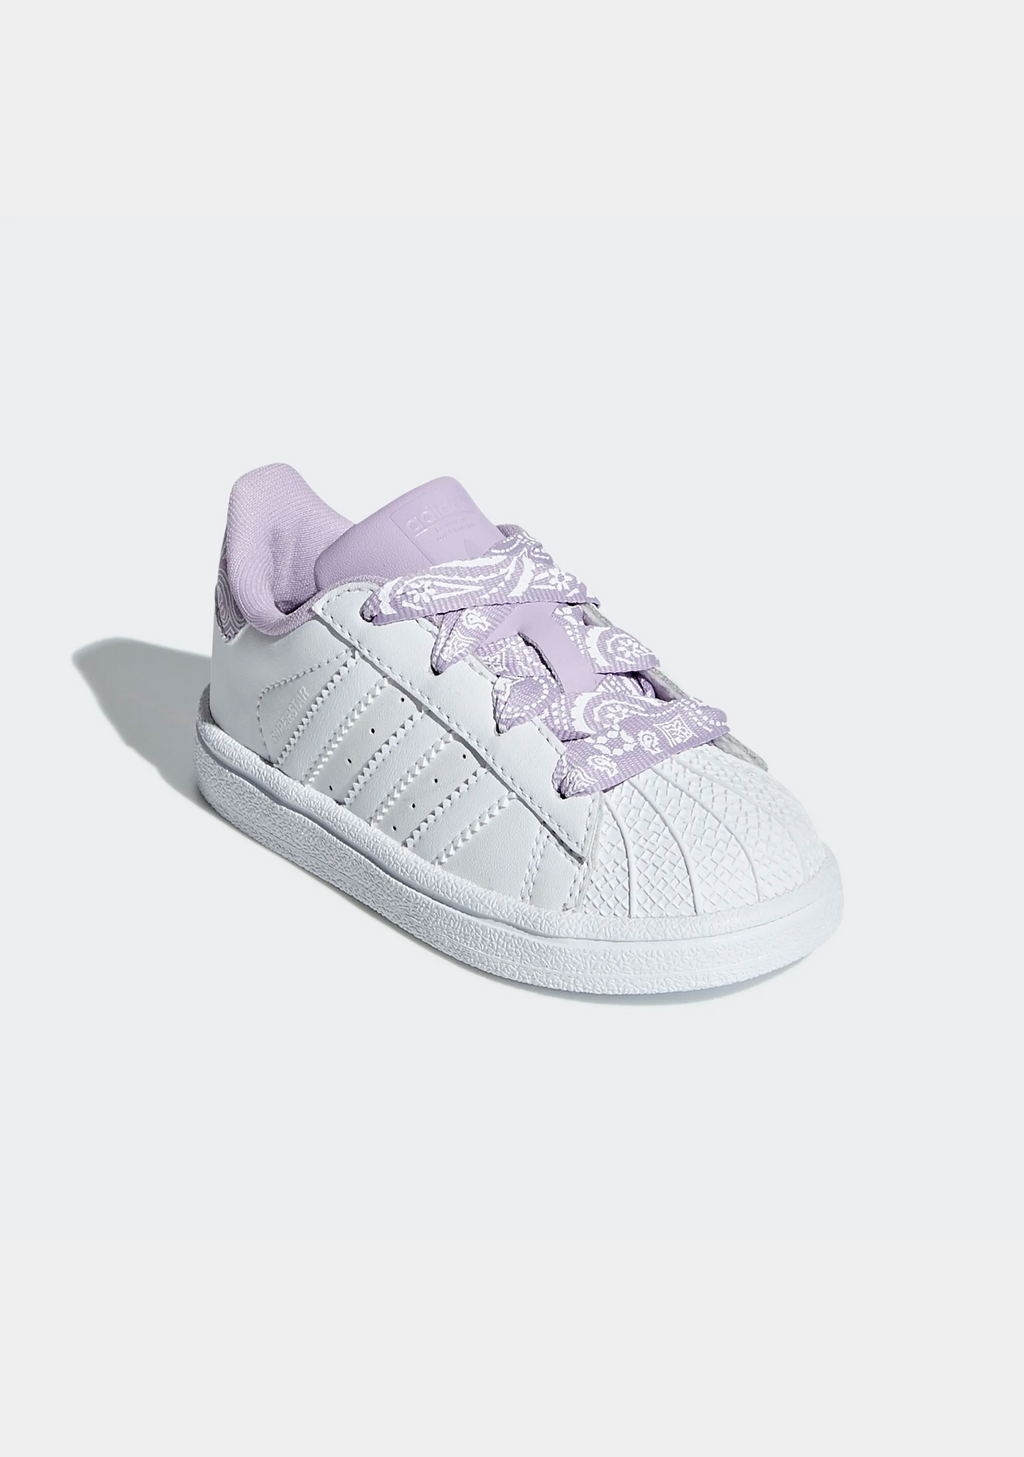 ADIDAS ORIGINALS INFANTS SUPERSTAR SHOES <br> CM8601